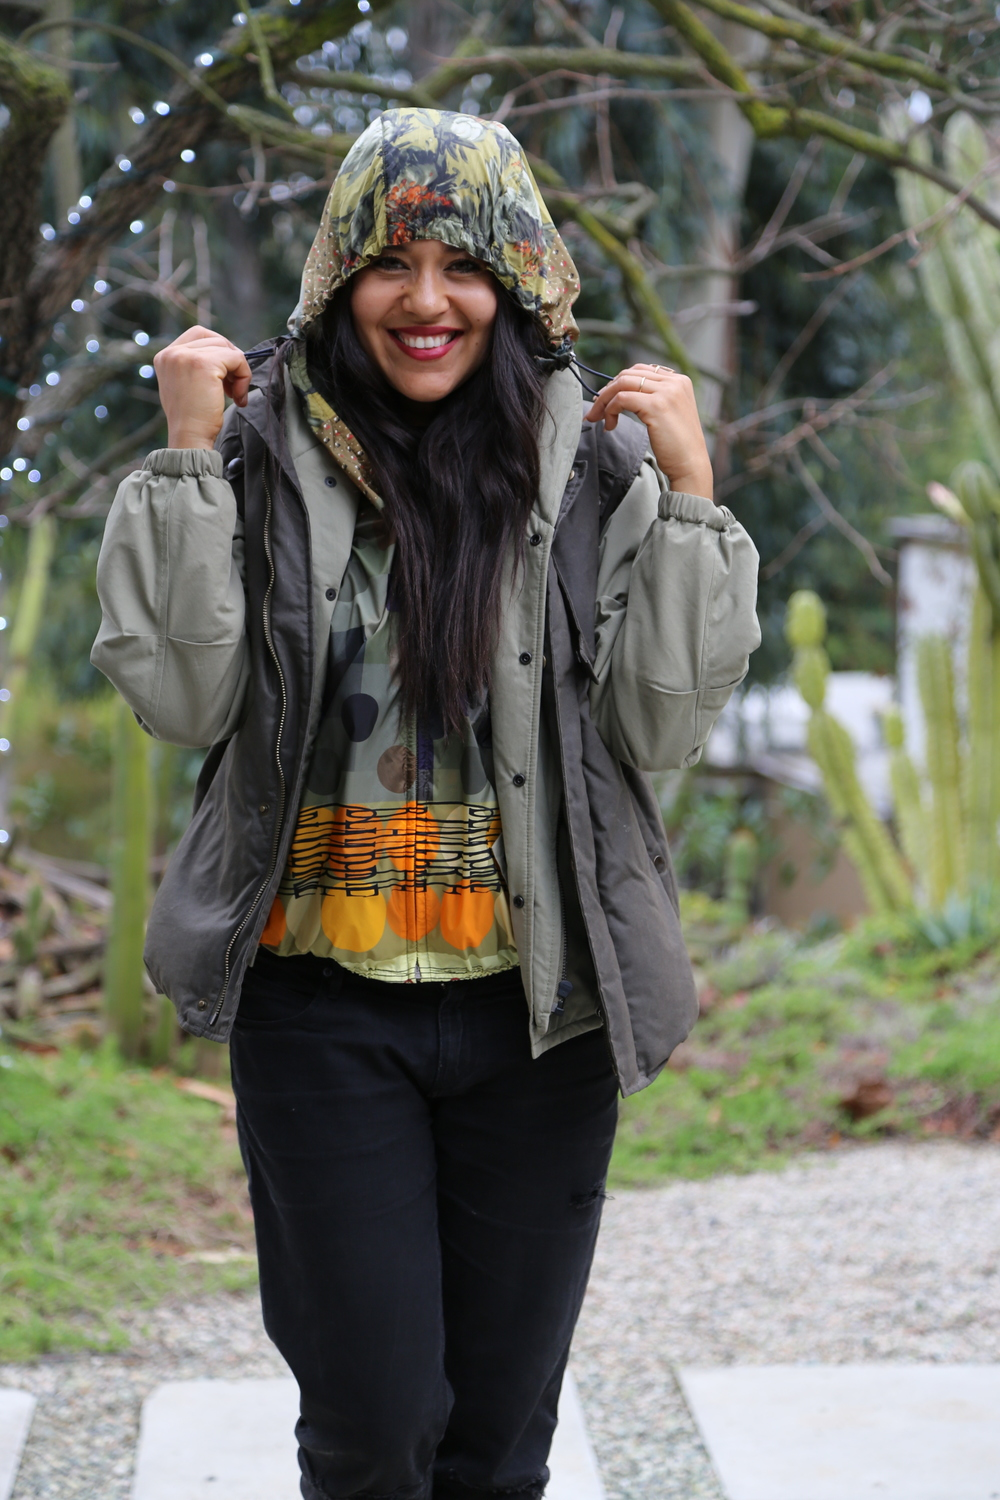 RTA-DENIM-BOYFRIEND-MASCIA-RAINCOAT-NOM-DE-GUERRE-VEST-HOOLLYWOOD-AVIATOR-JACKET-LOS-ANGELES.JPG